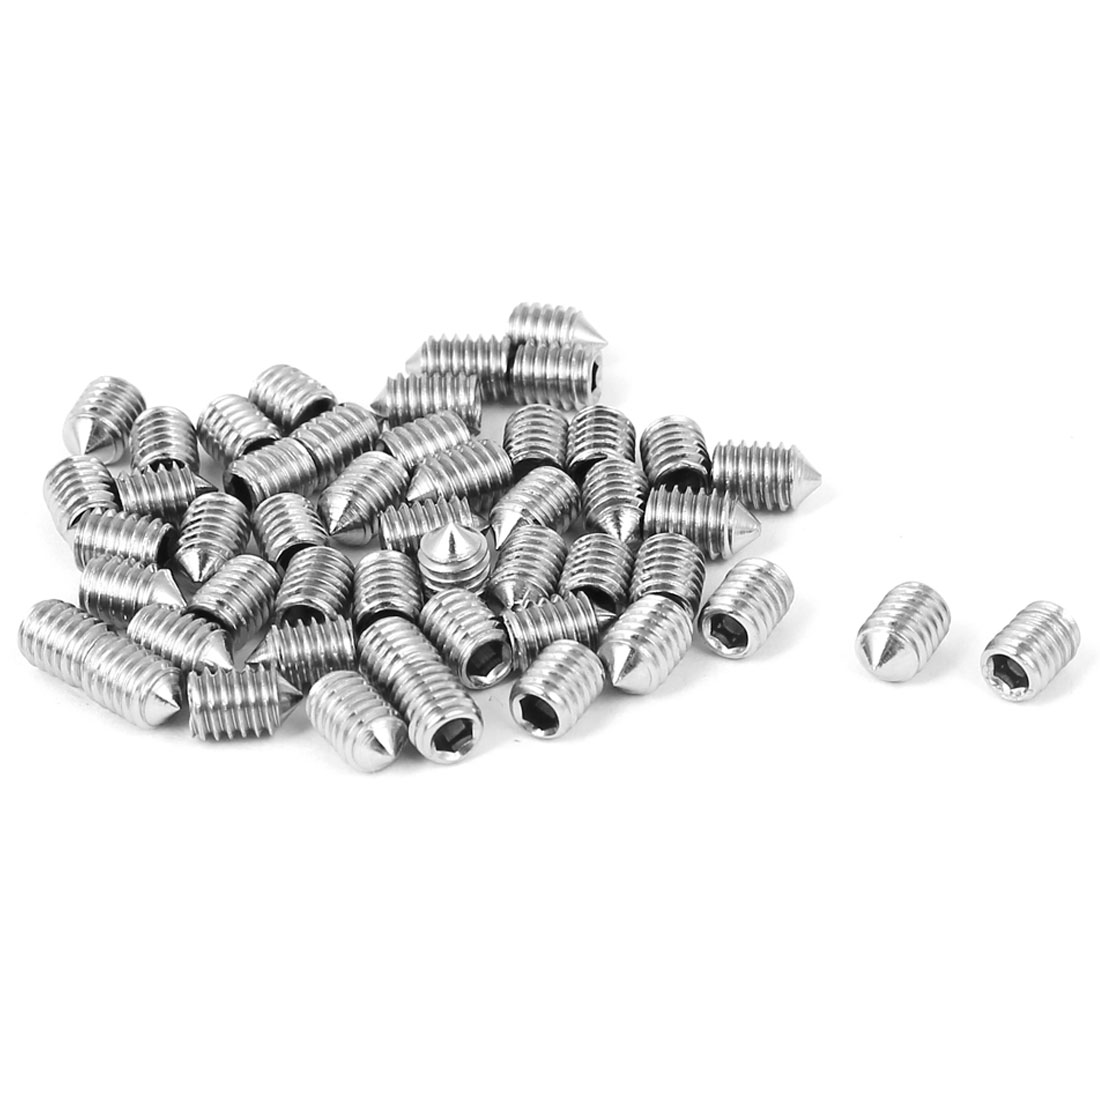 M4x6mm Stainless Steel Cone Point Grub Screws Hex Socket Set Screw 50pcs